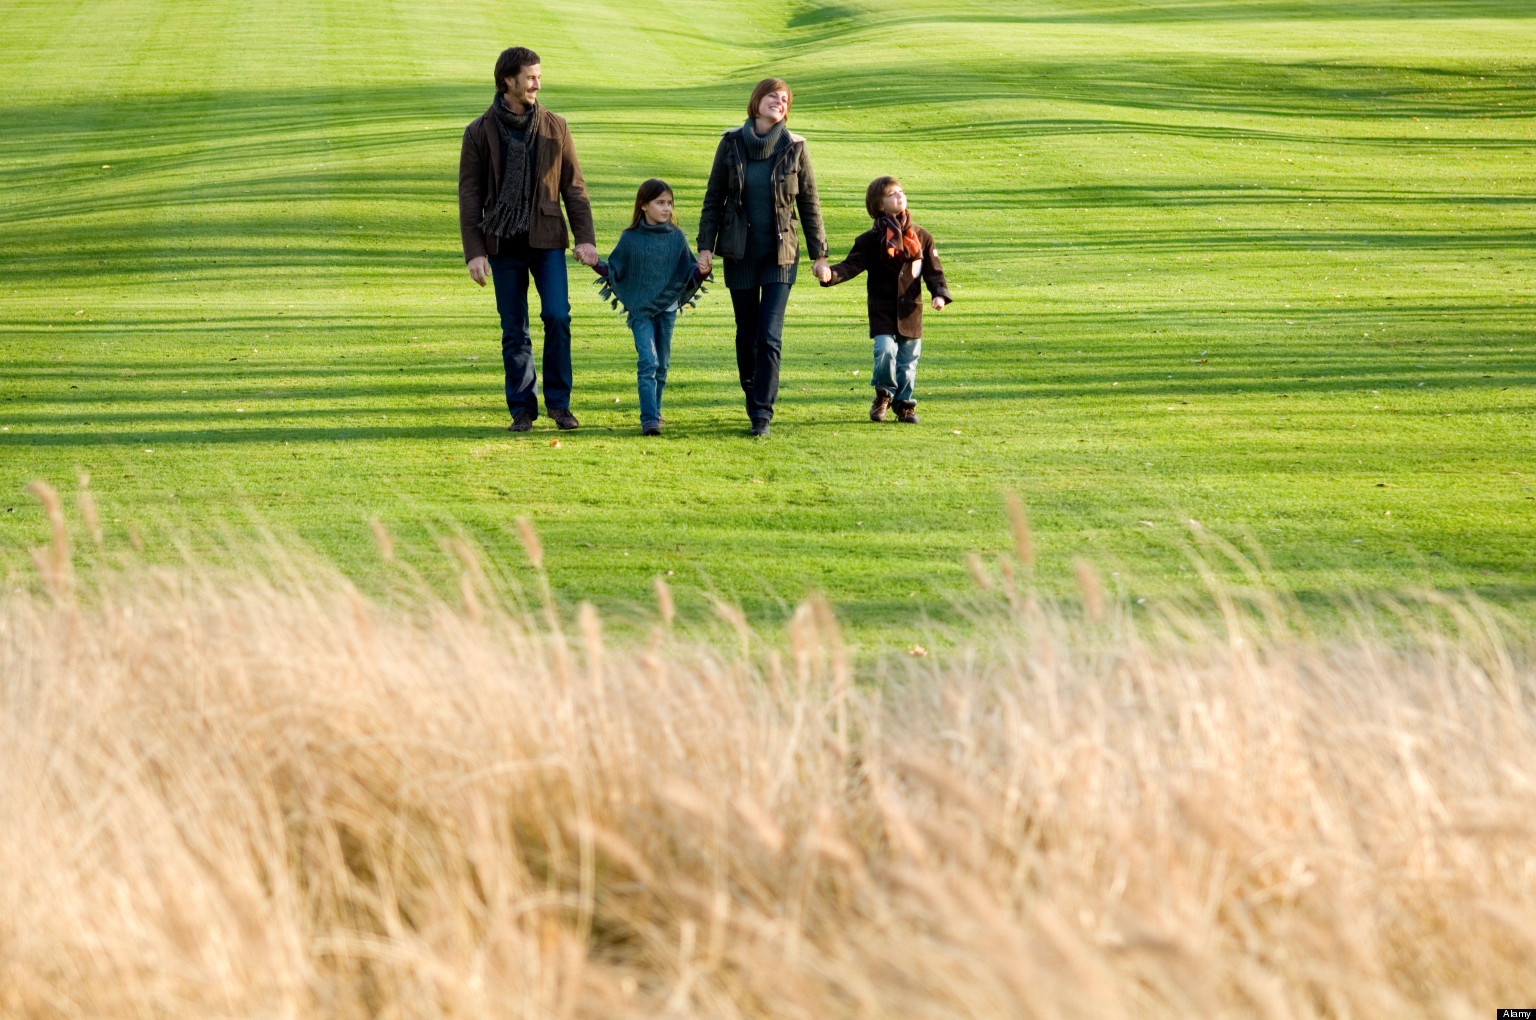 Two children with their parents walking in a park